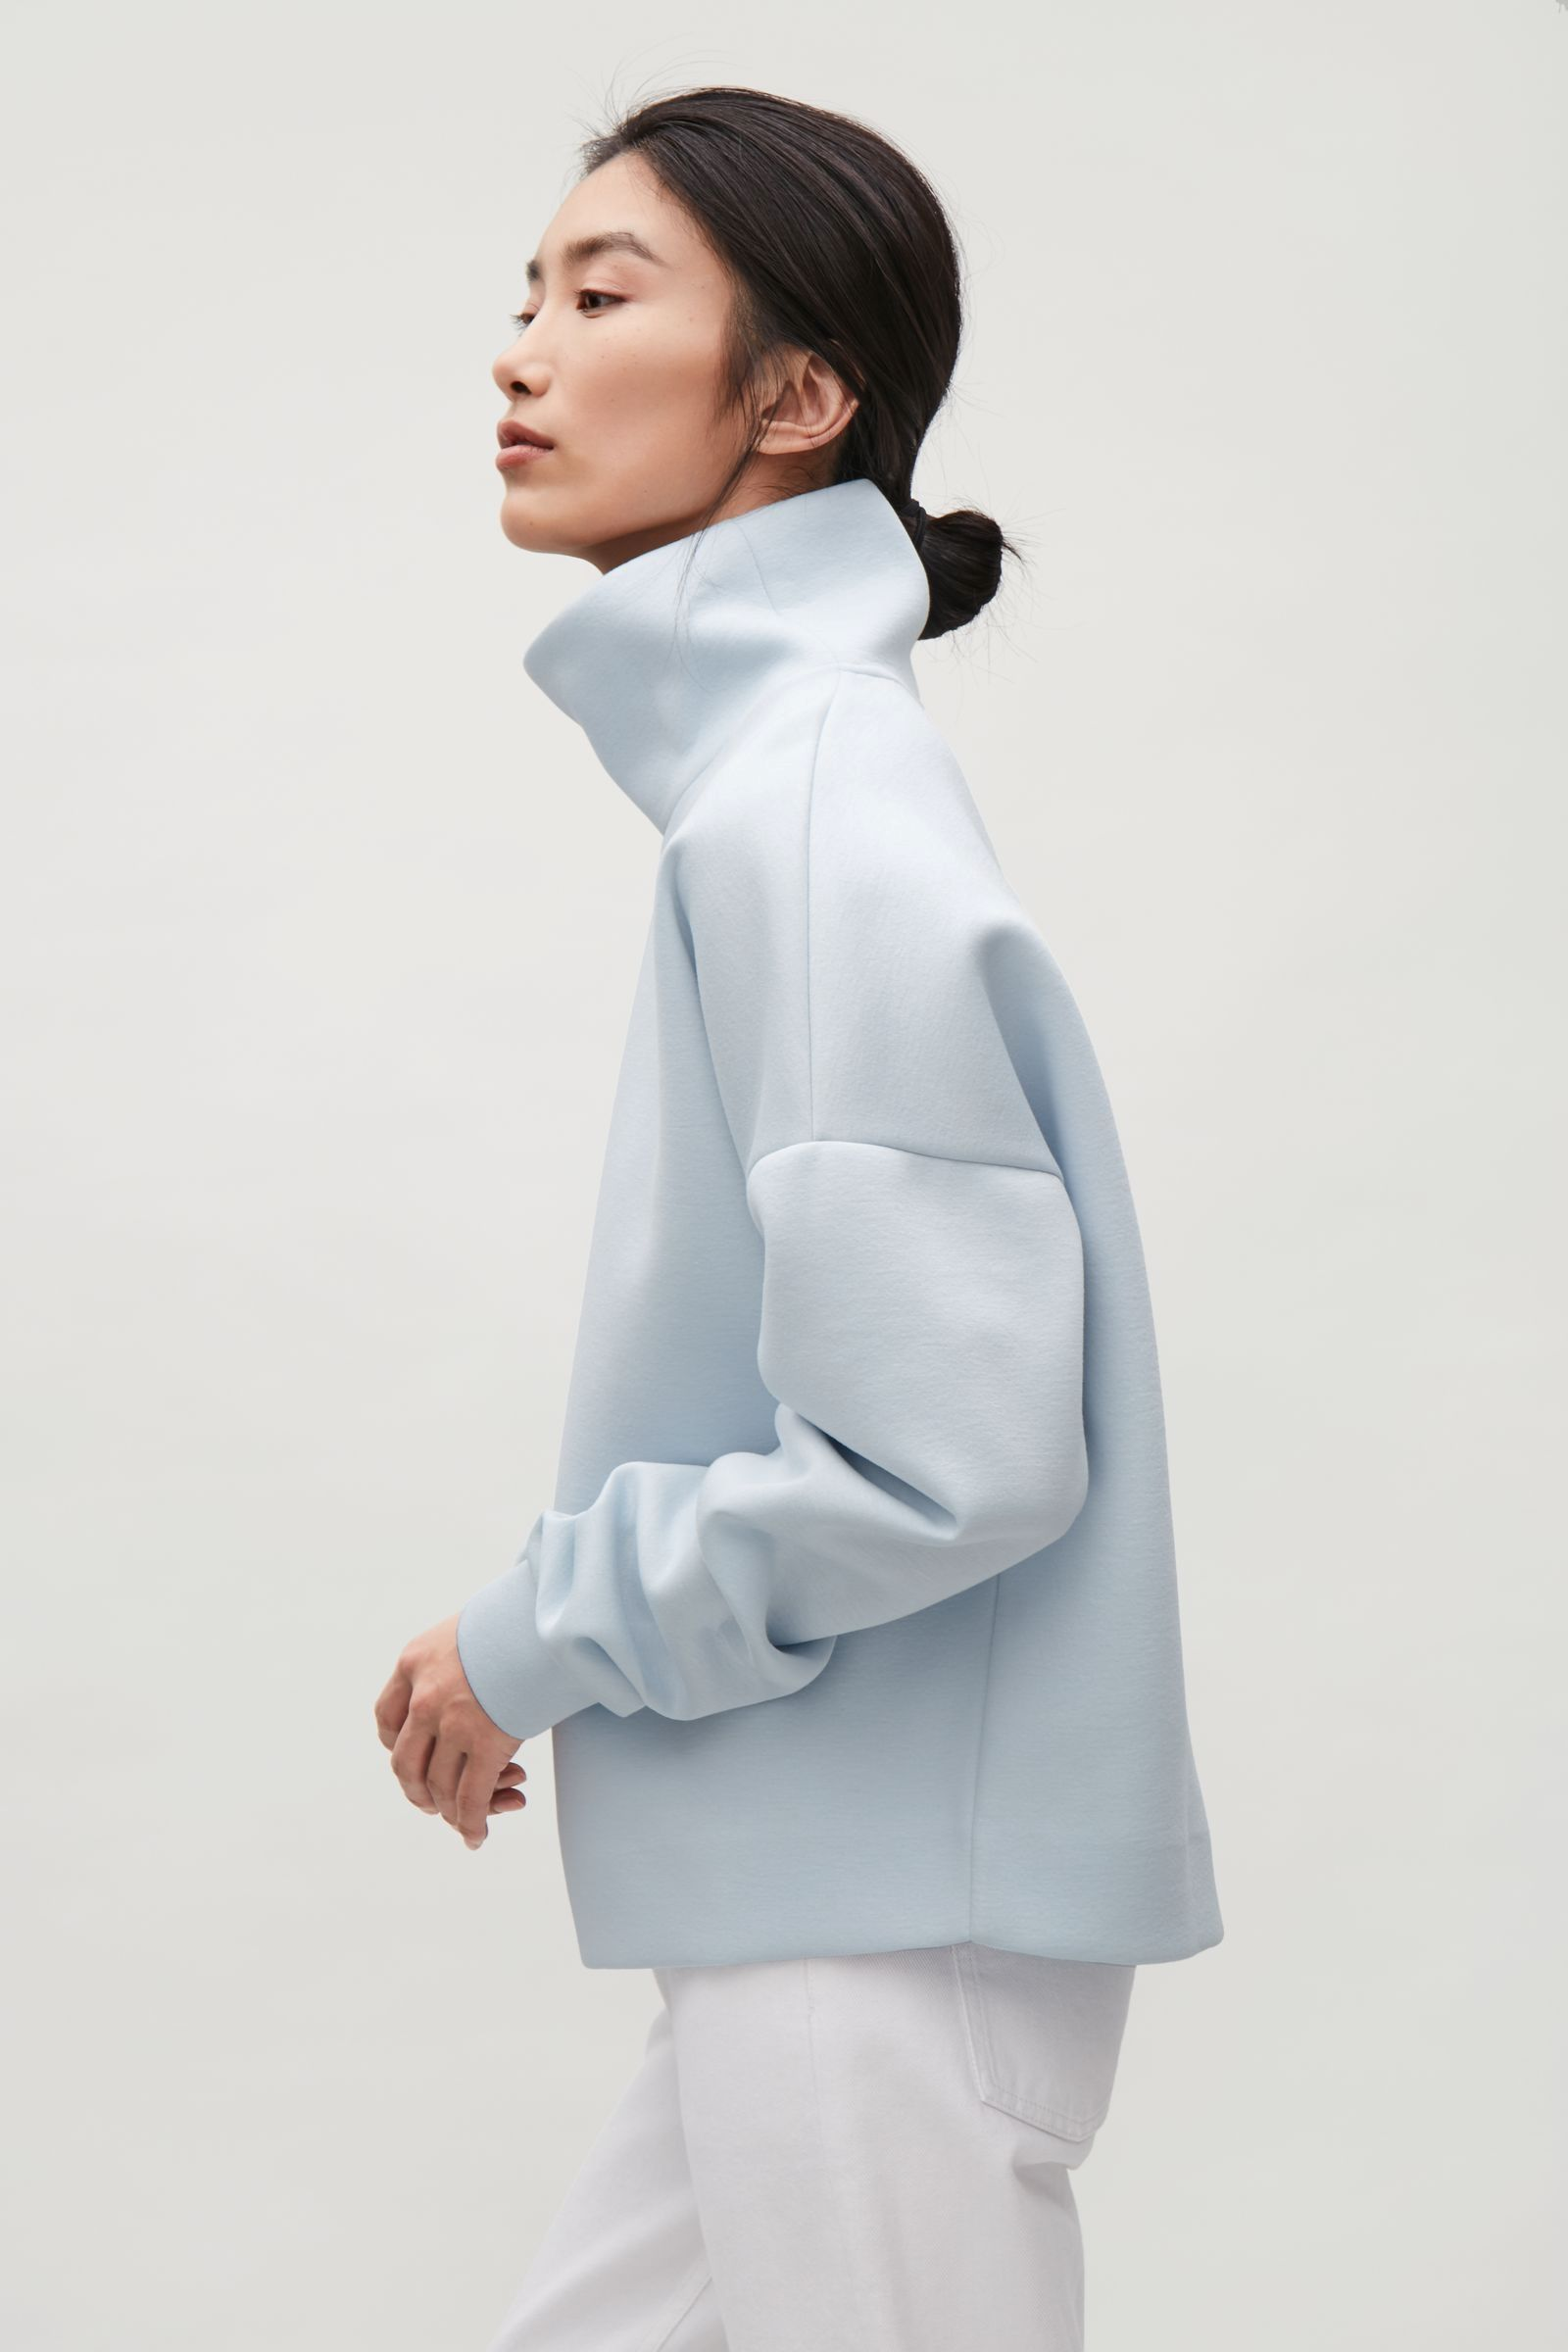 e46b4f3f39 COS image 17 of Oversized high-neck sweatshirt in Pale Blue